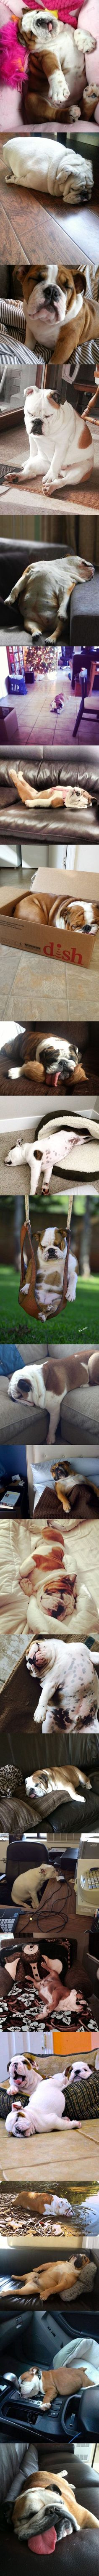 It's official, English Bulldogs can sleep at absolutely any time and anywhere. We challenge you to find a location and time that a Bulldog wouldn't find a way to nap! www.bullymake.com